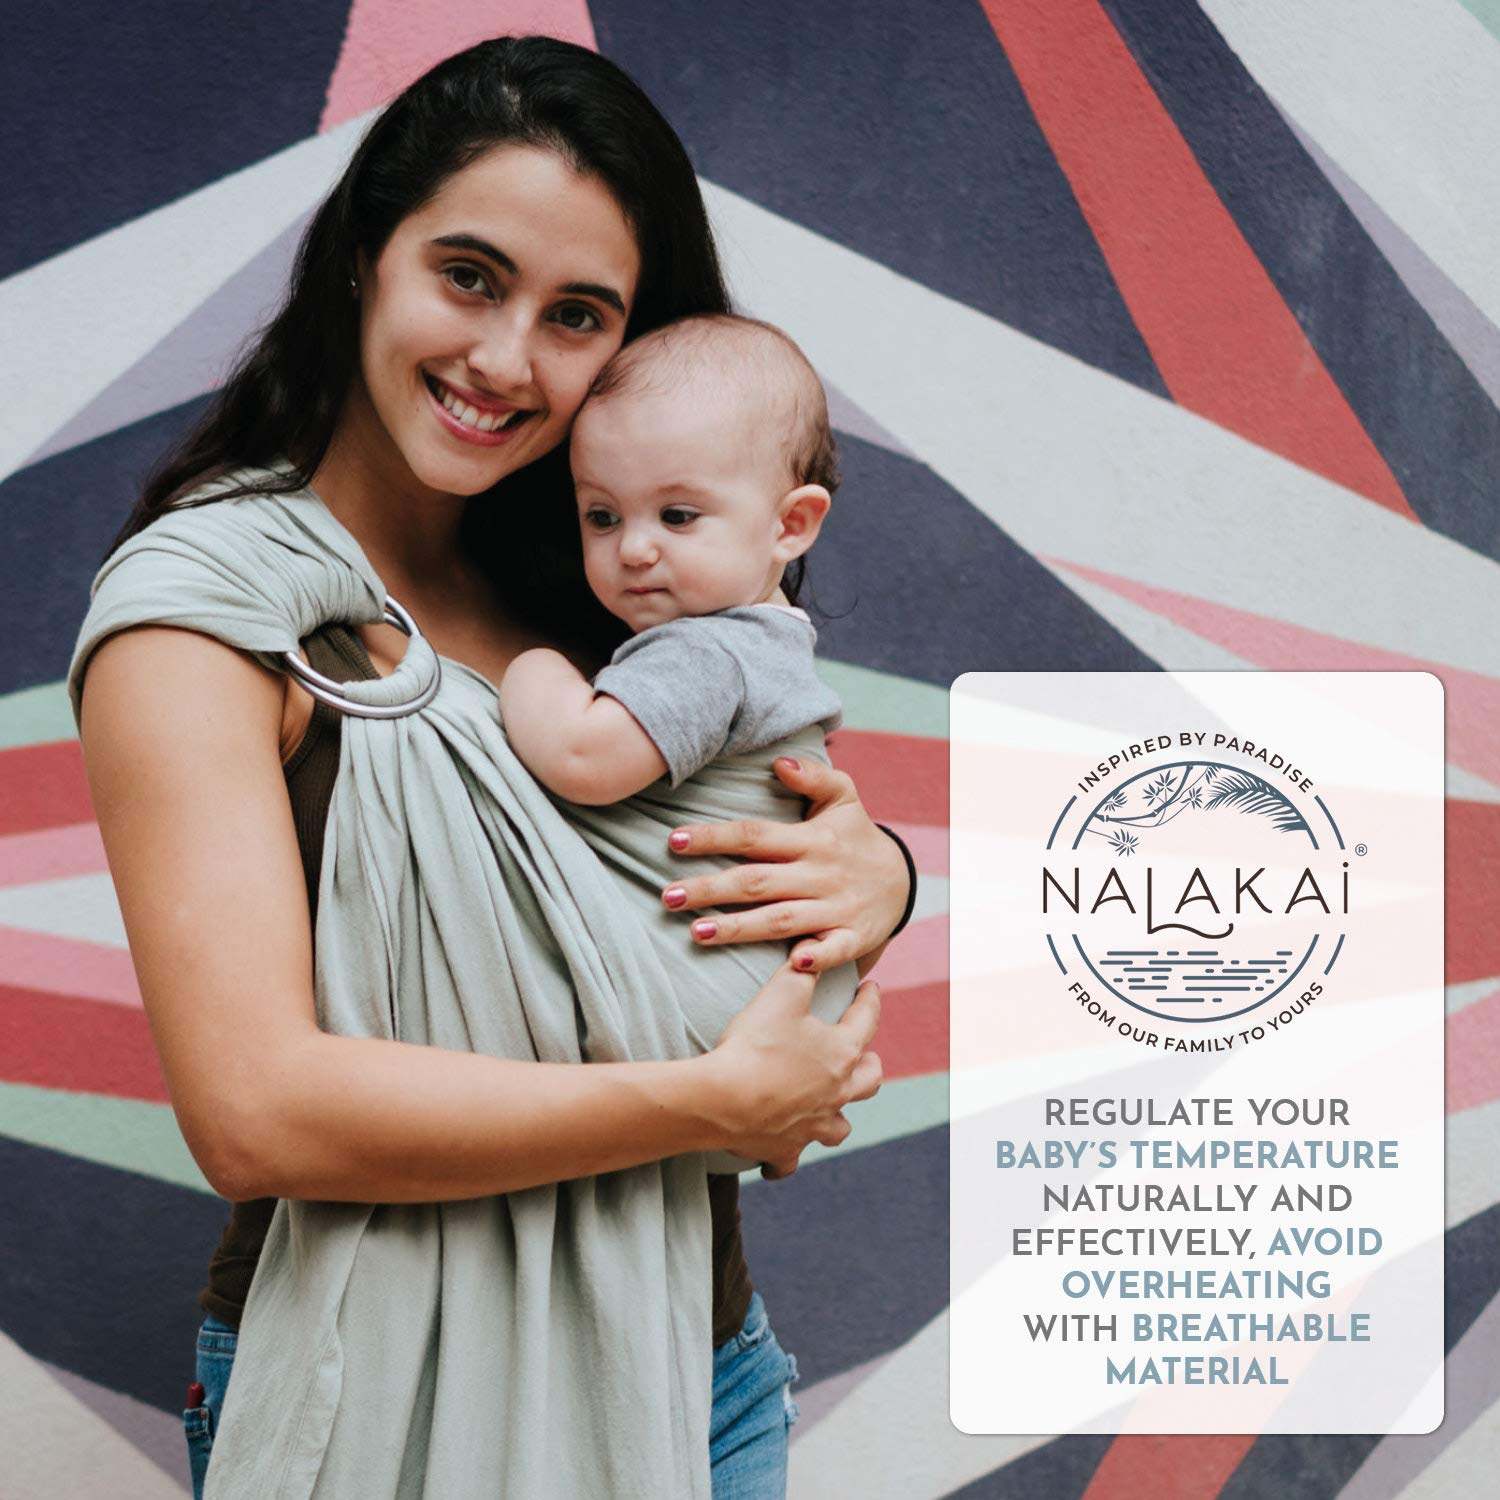 Nursing Cover Lightweight Plus Size Infant Carrier Also for Newborns and Toddlers Nalakai Luxury Ring Sling Baby Carrier Sand Perfect Baby Shower Gift Extra-Soft Bamboo and Linen Fabric